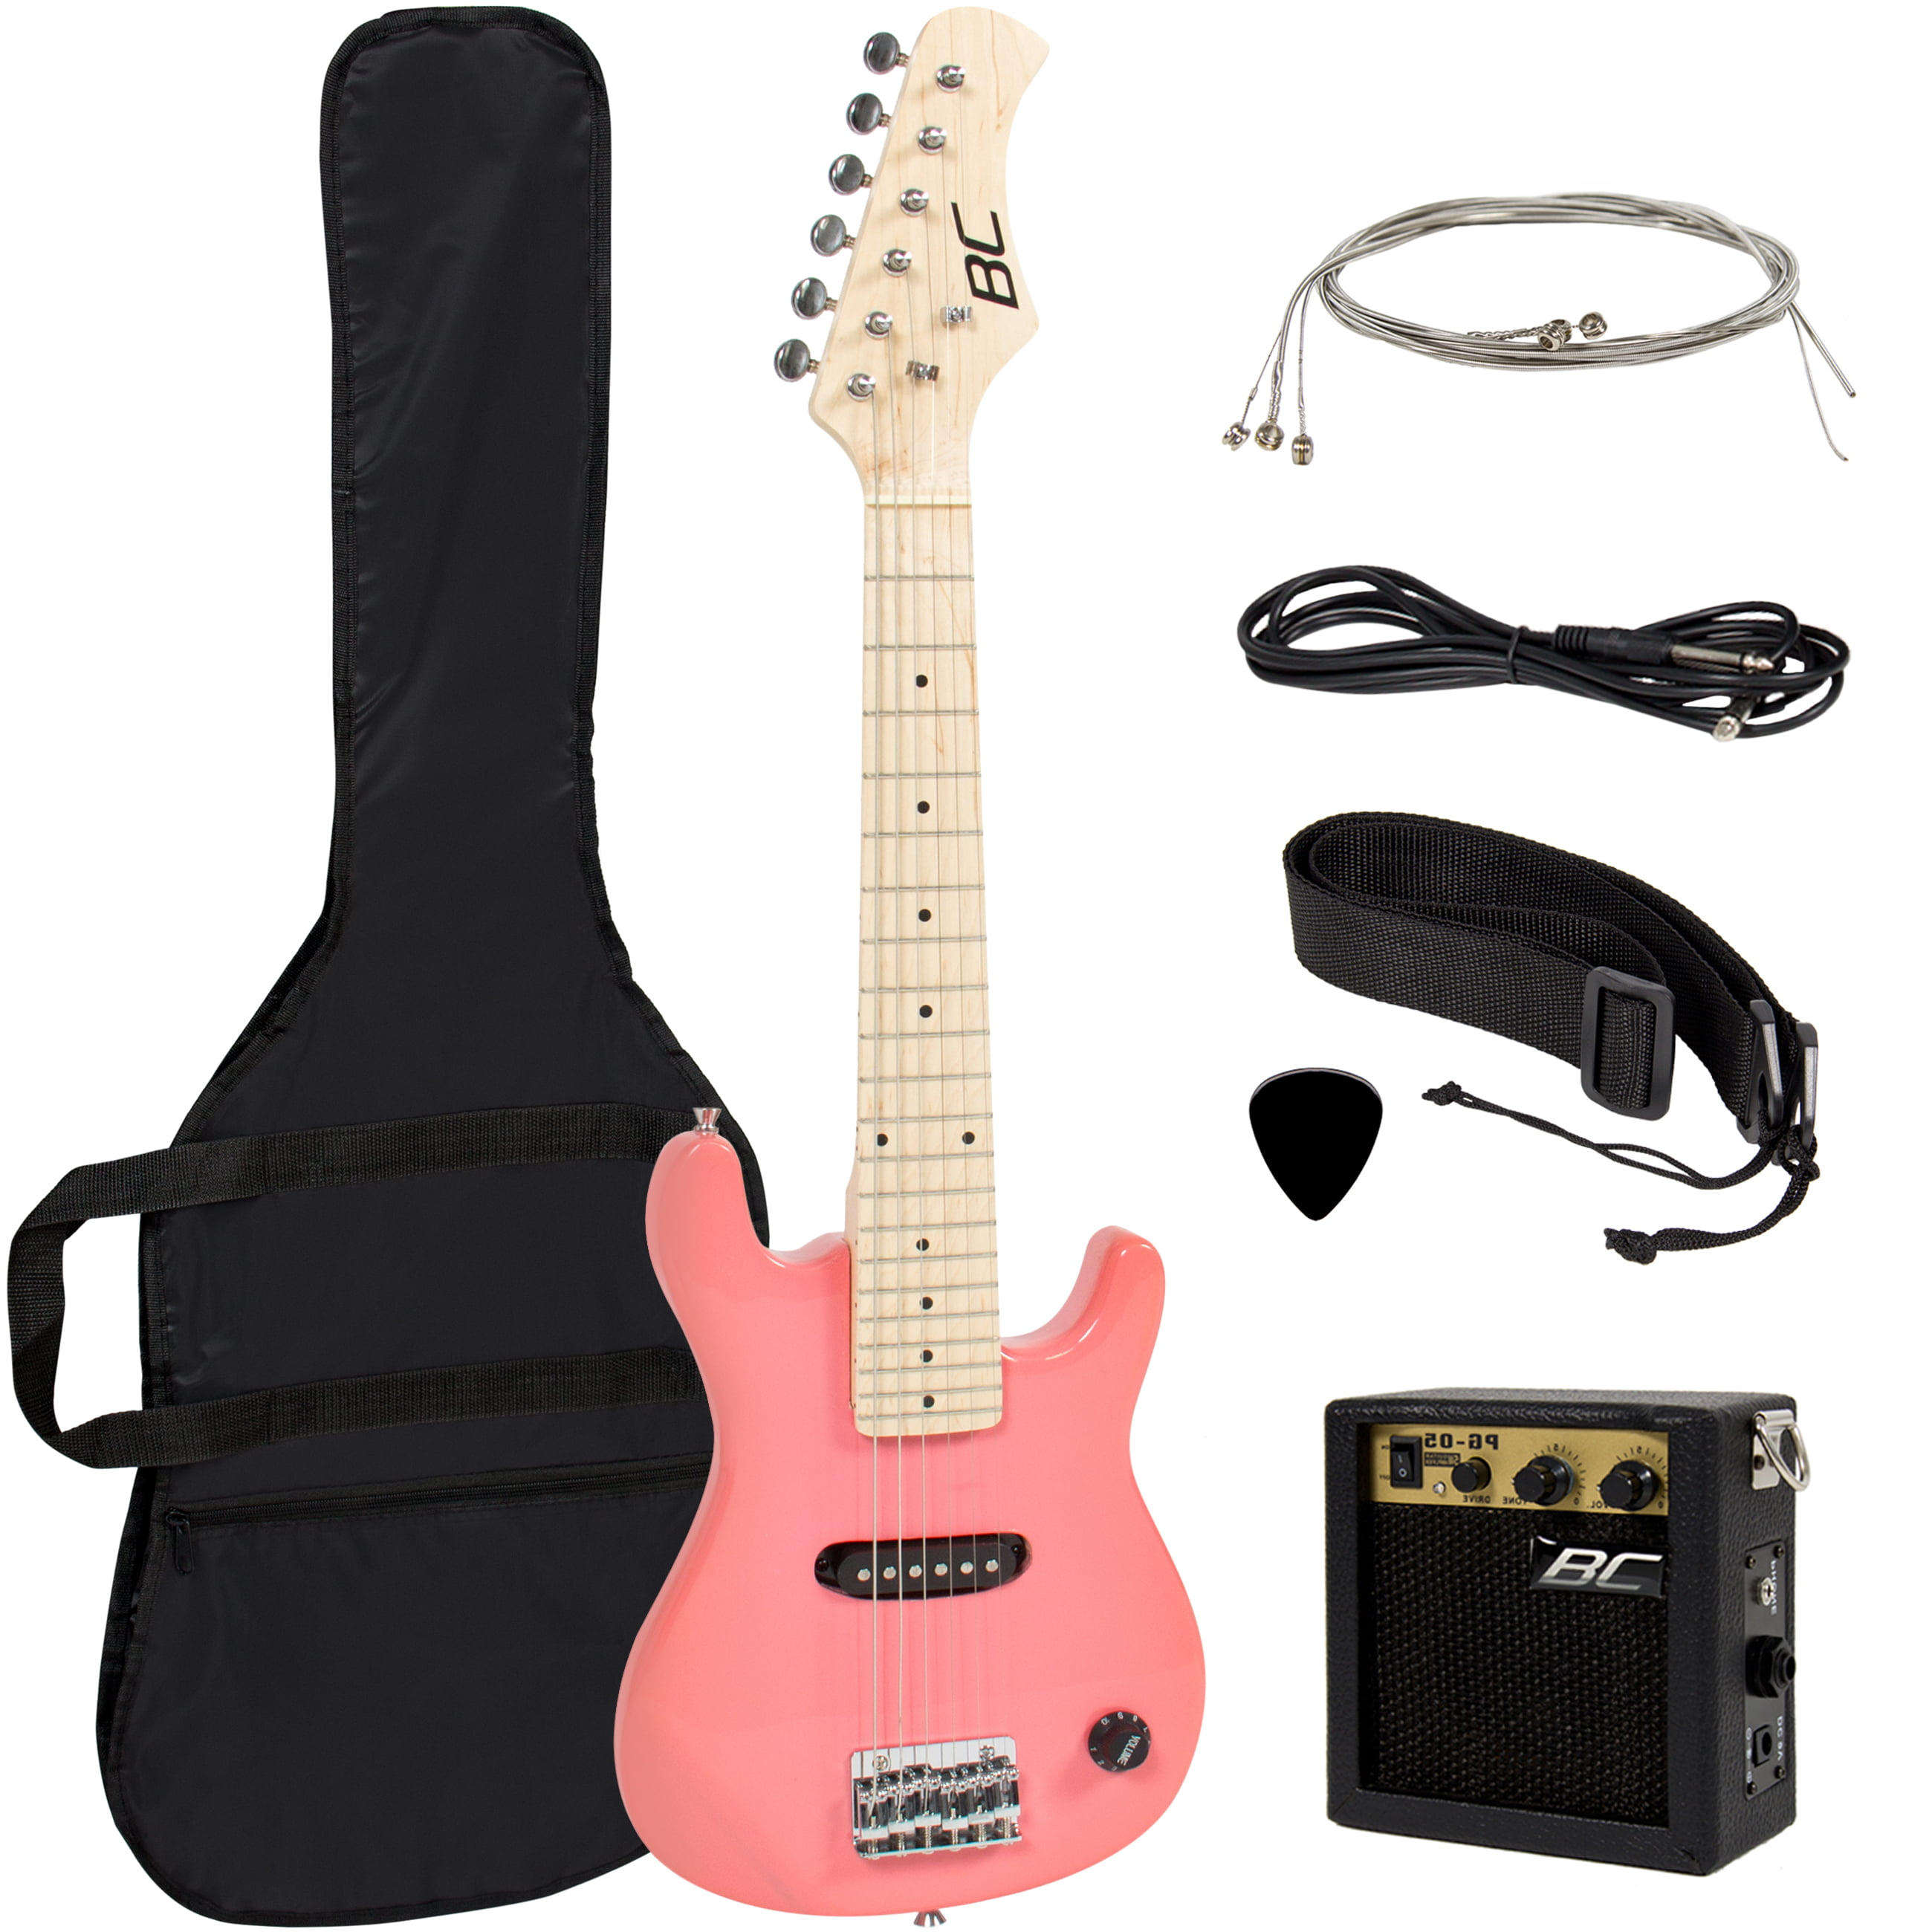 "Electric Guitar Kids 30"" Pink Guitar With Amp + Case + Strap and More New by SKY"